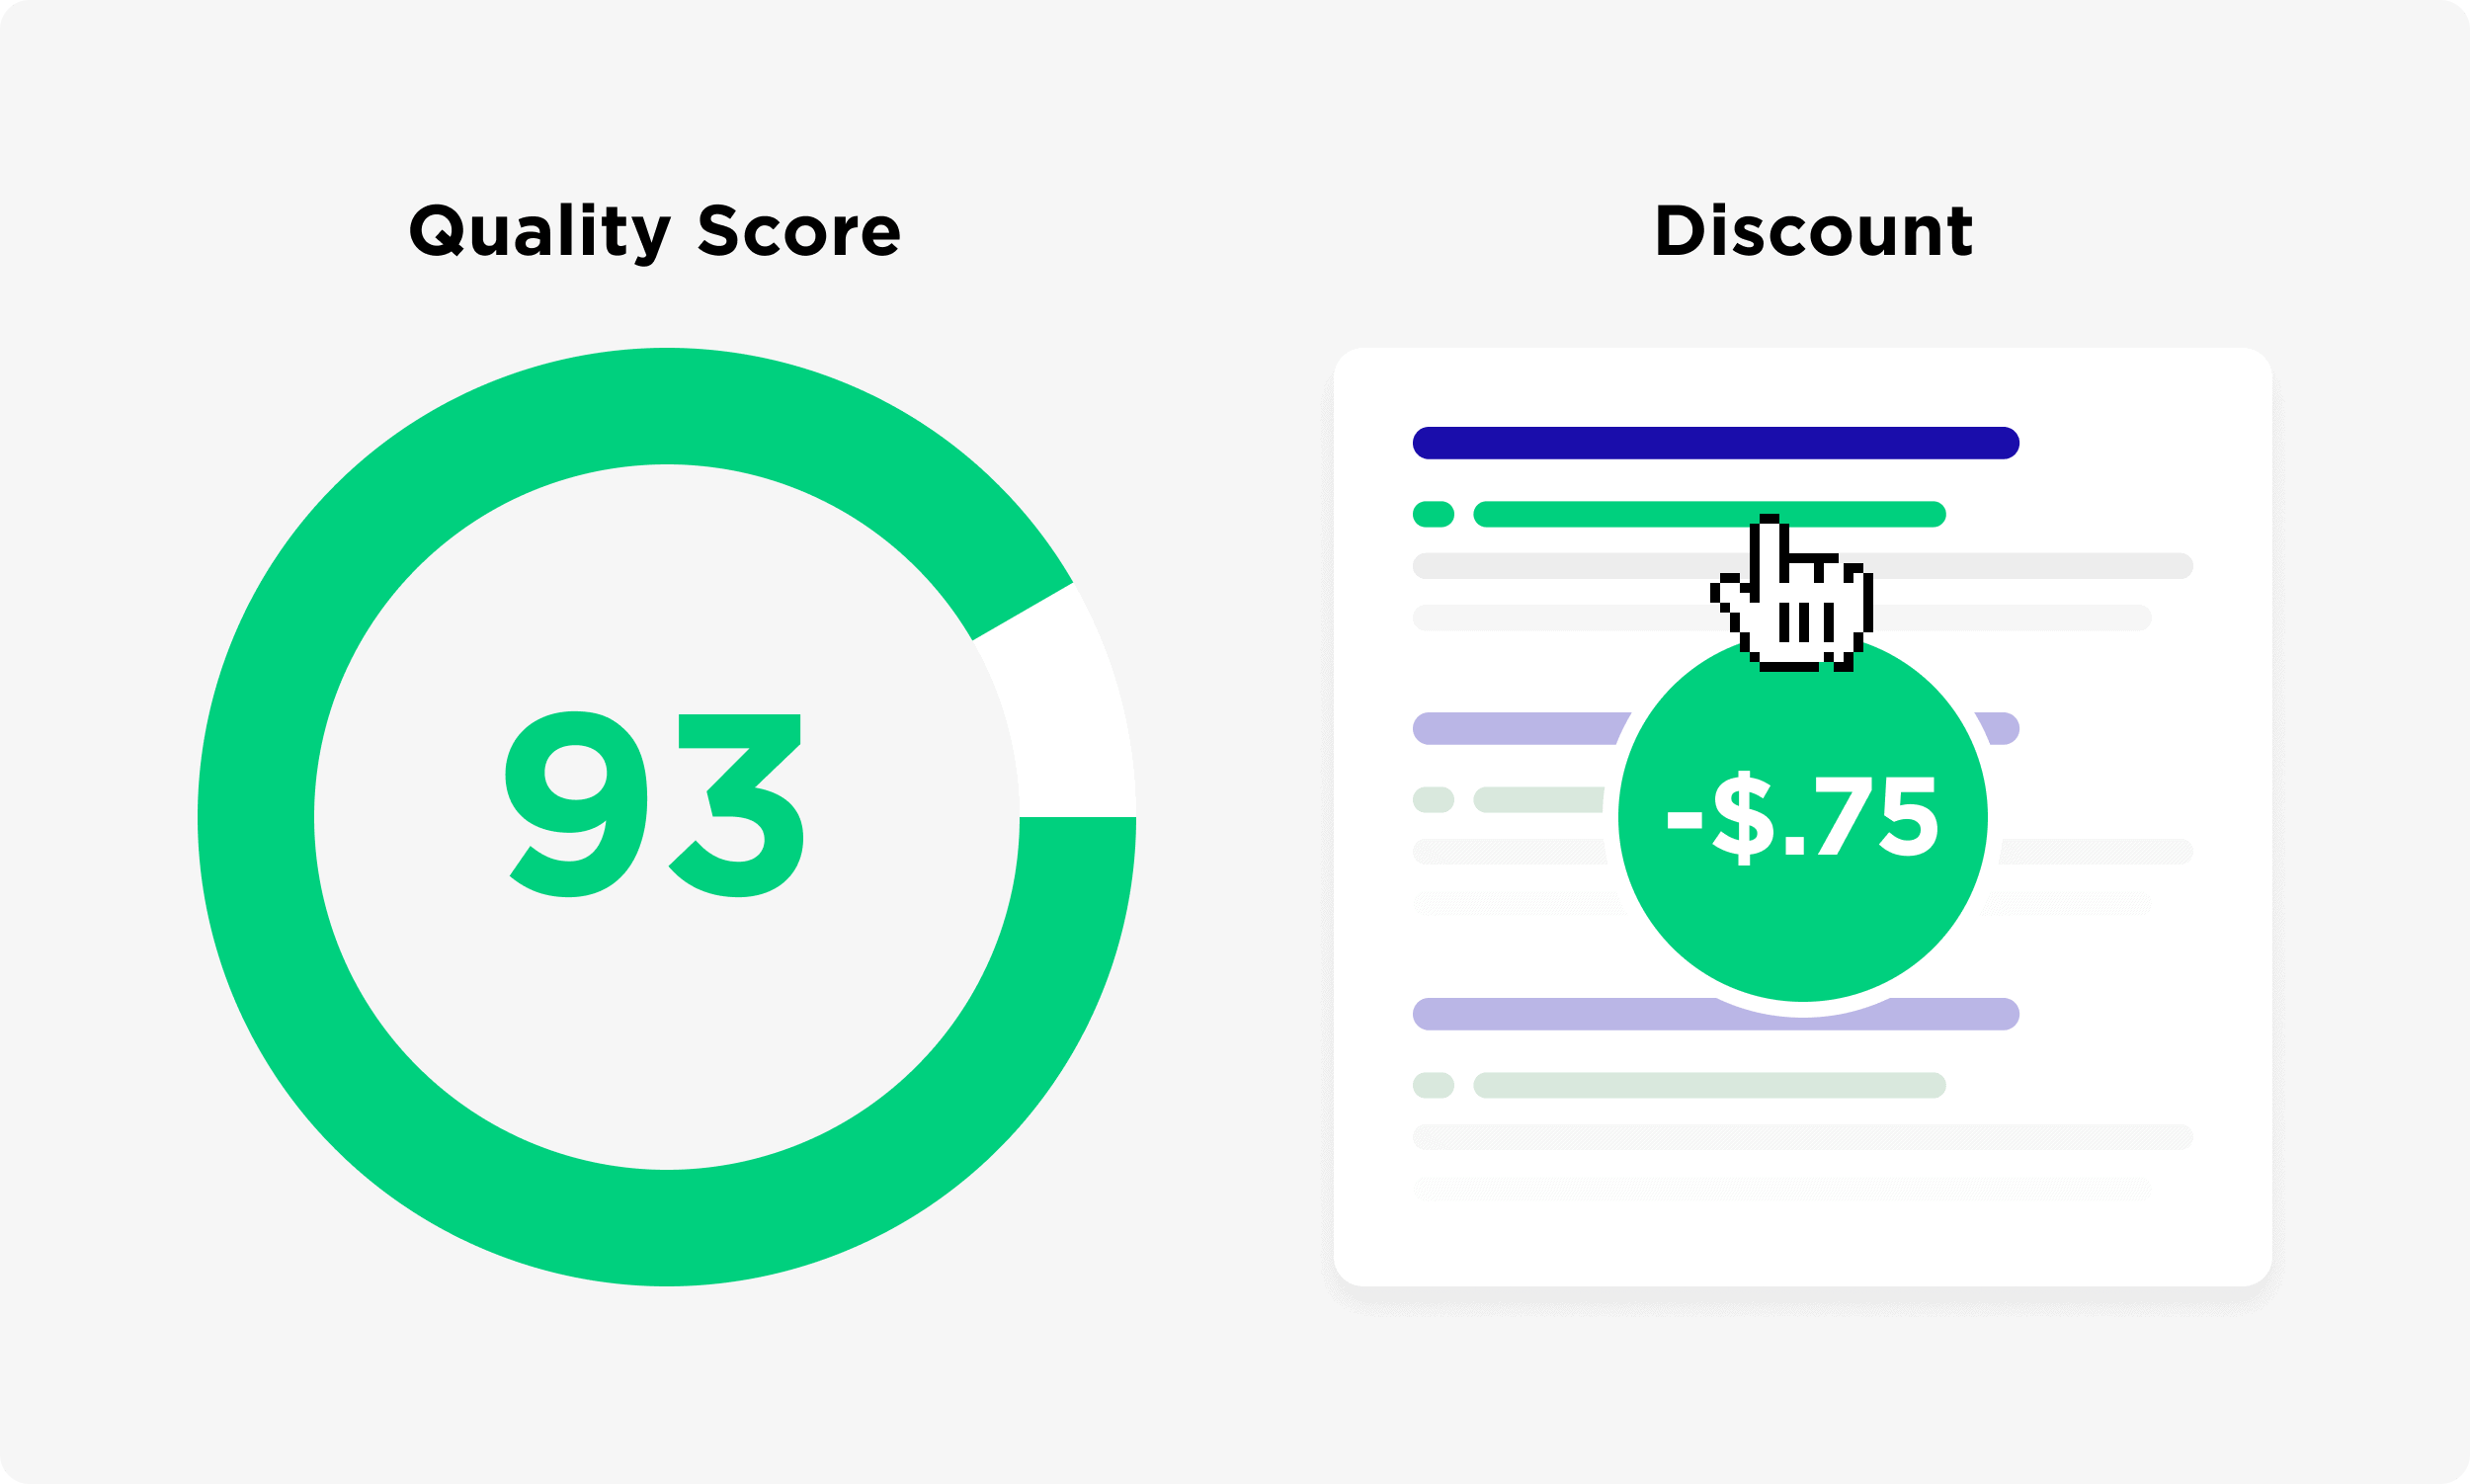 High Quality Score Means You Will Get A Discount For Each Click